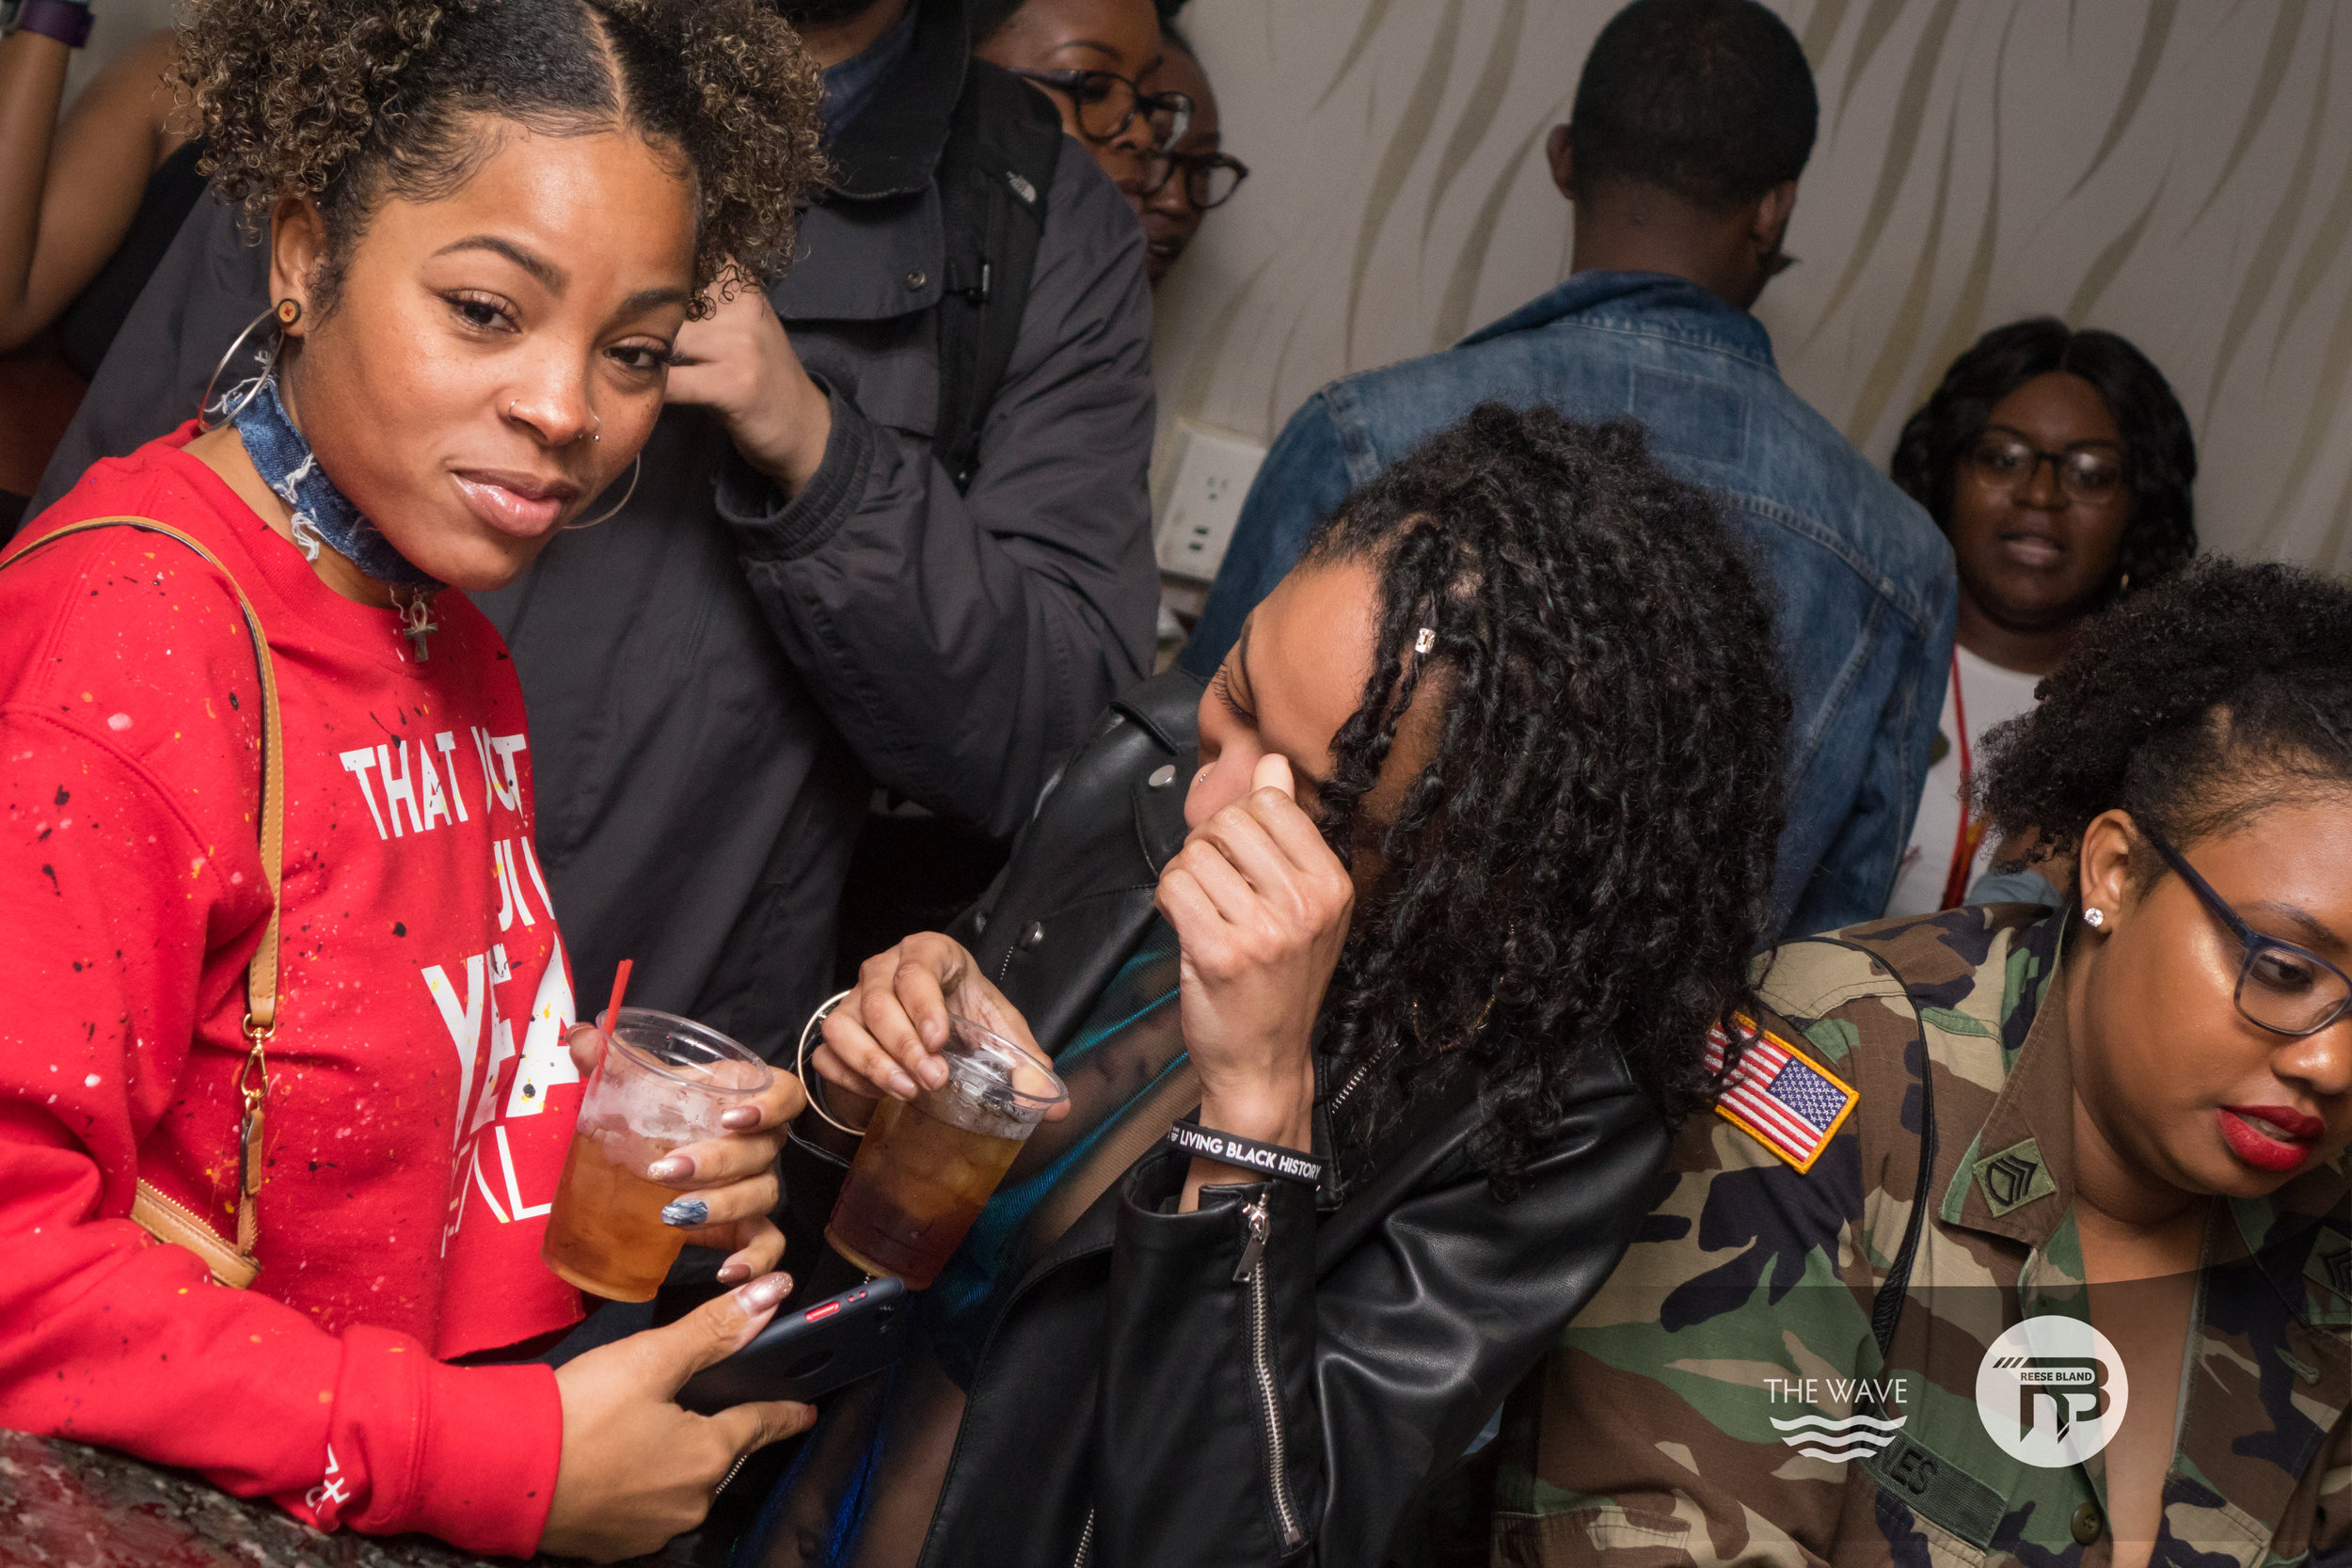 WaveDC-BlackBarCrawl-2-2018-06964.jpg